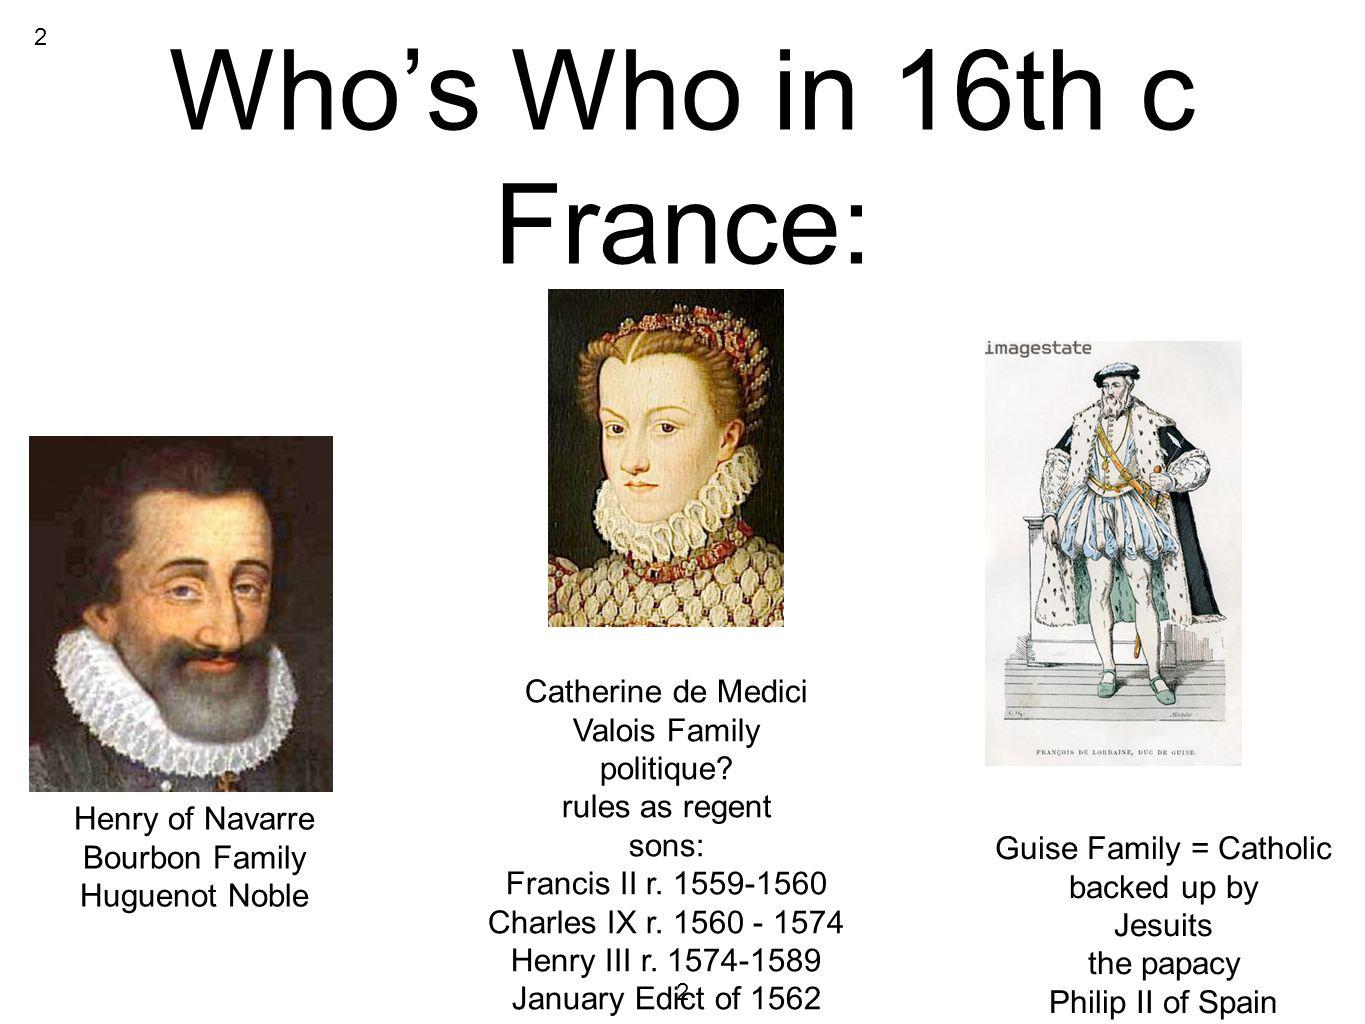 Who's Who in 16th c France: